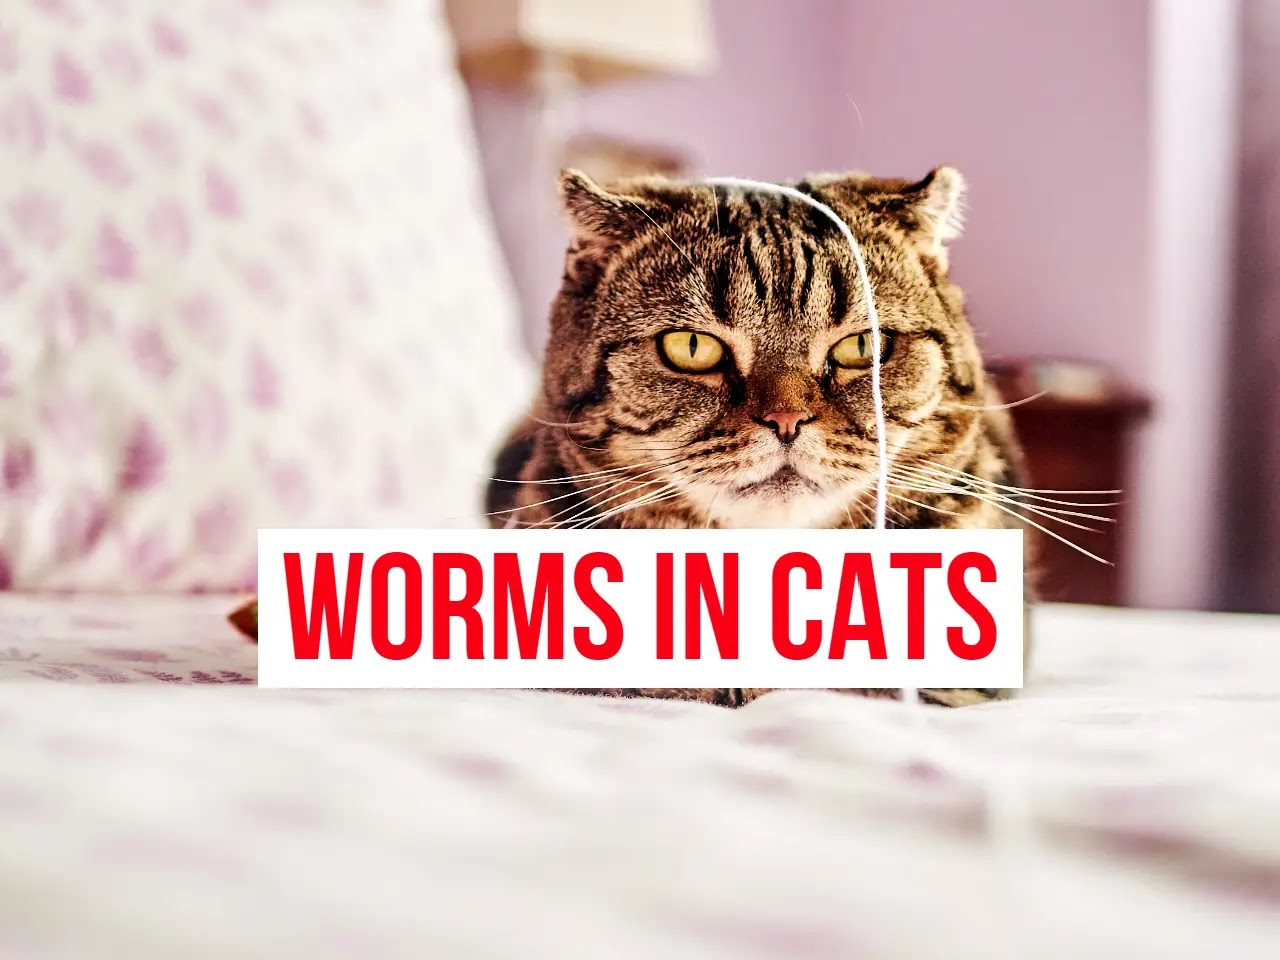 Worms in Cats